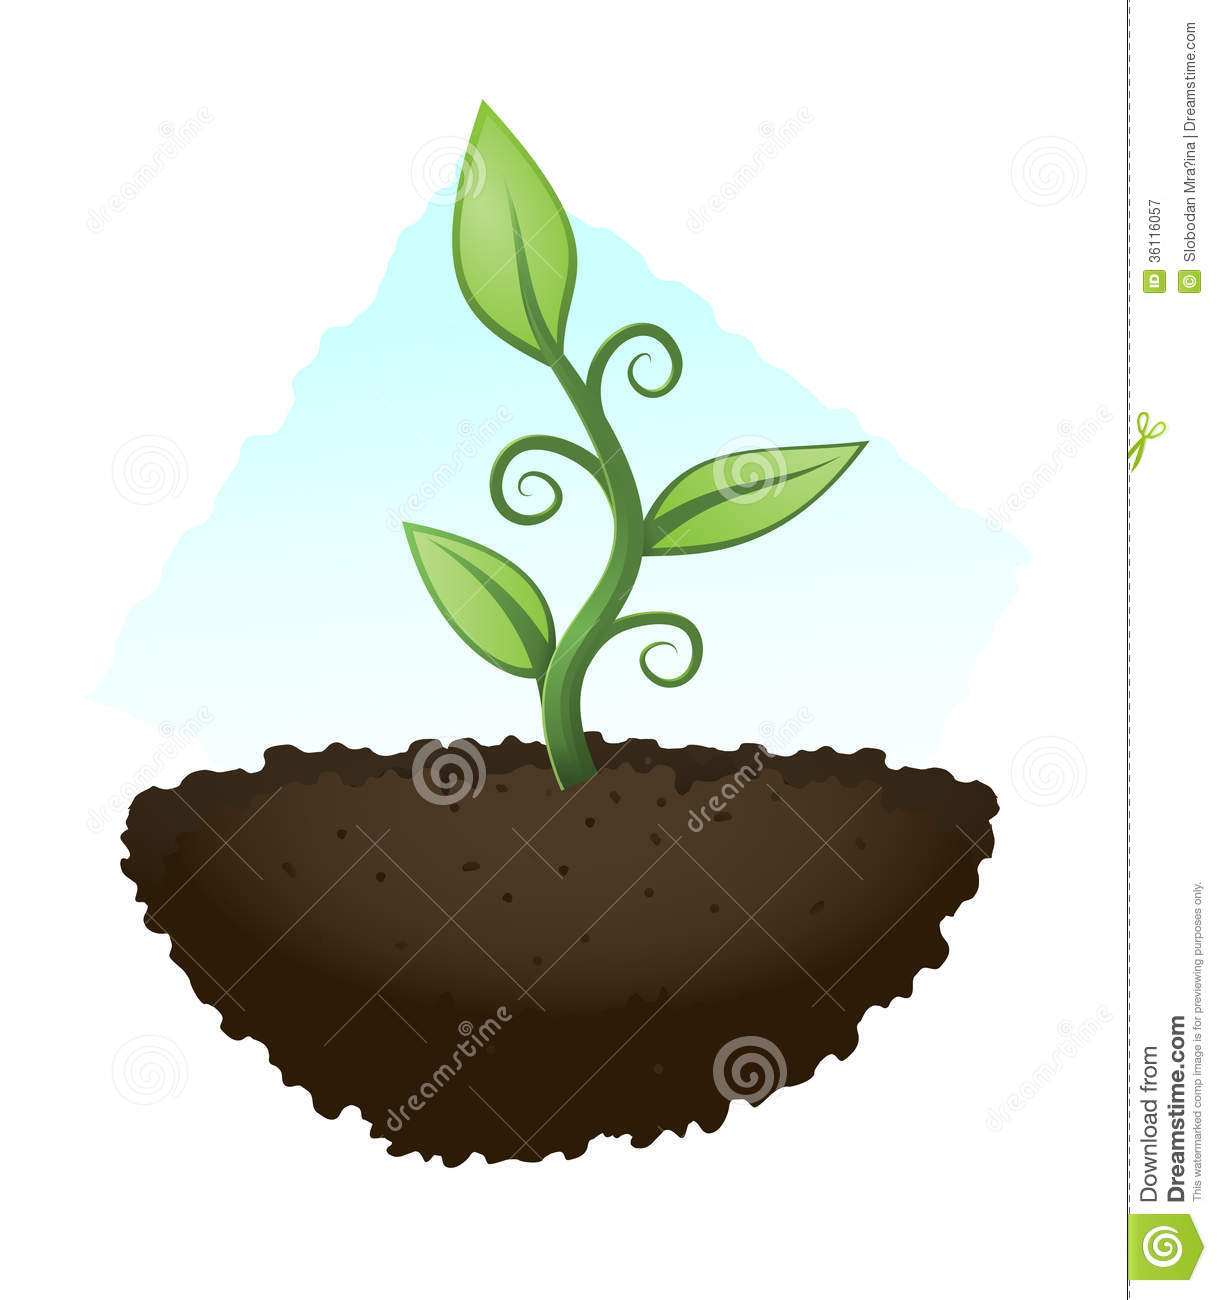 Soil clipart free 2 » Clipart Station.